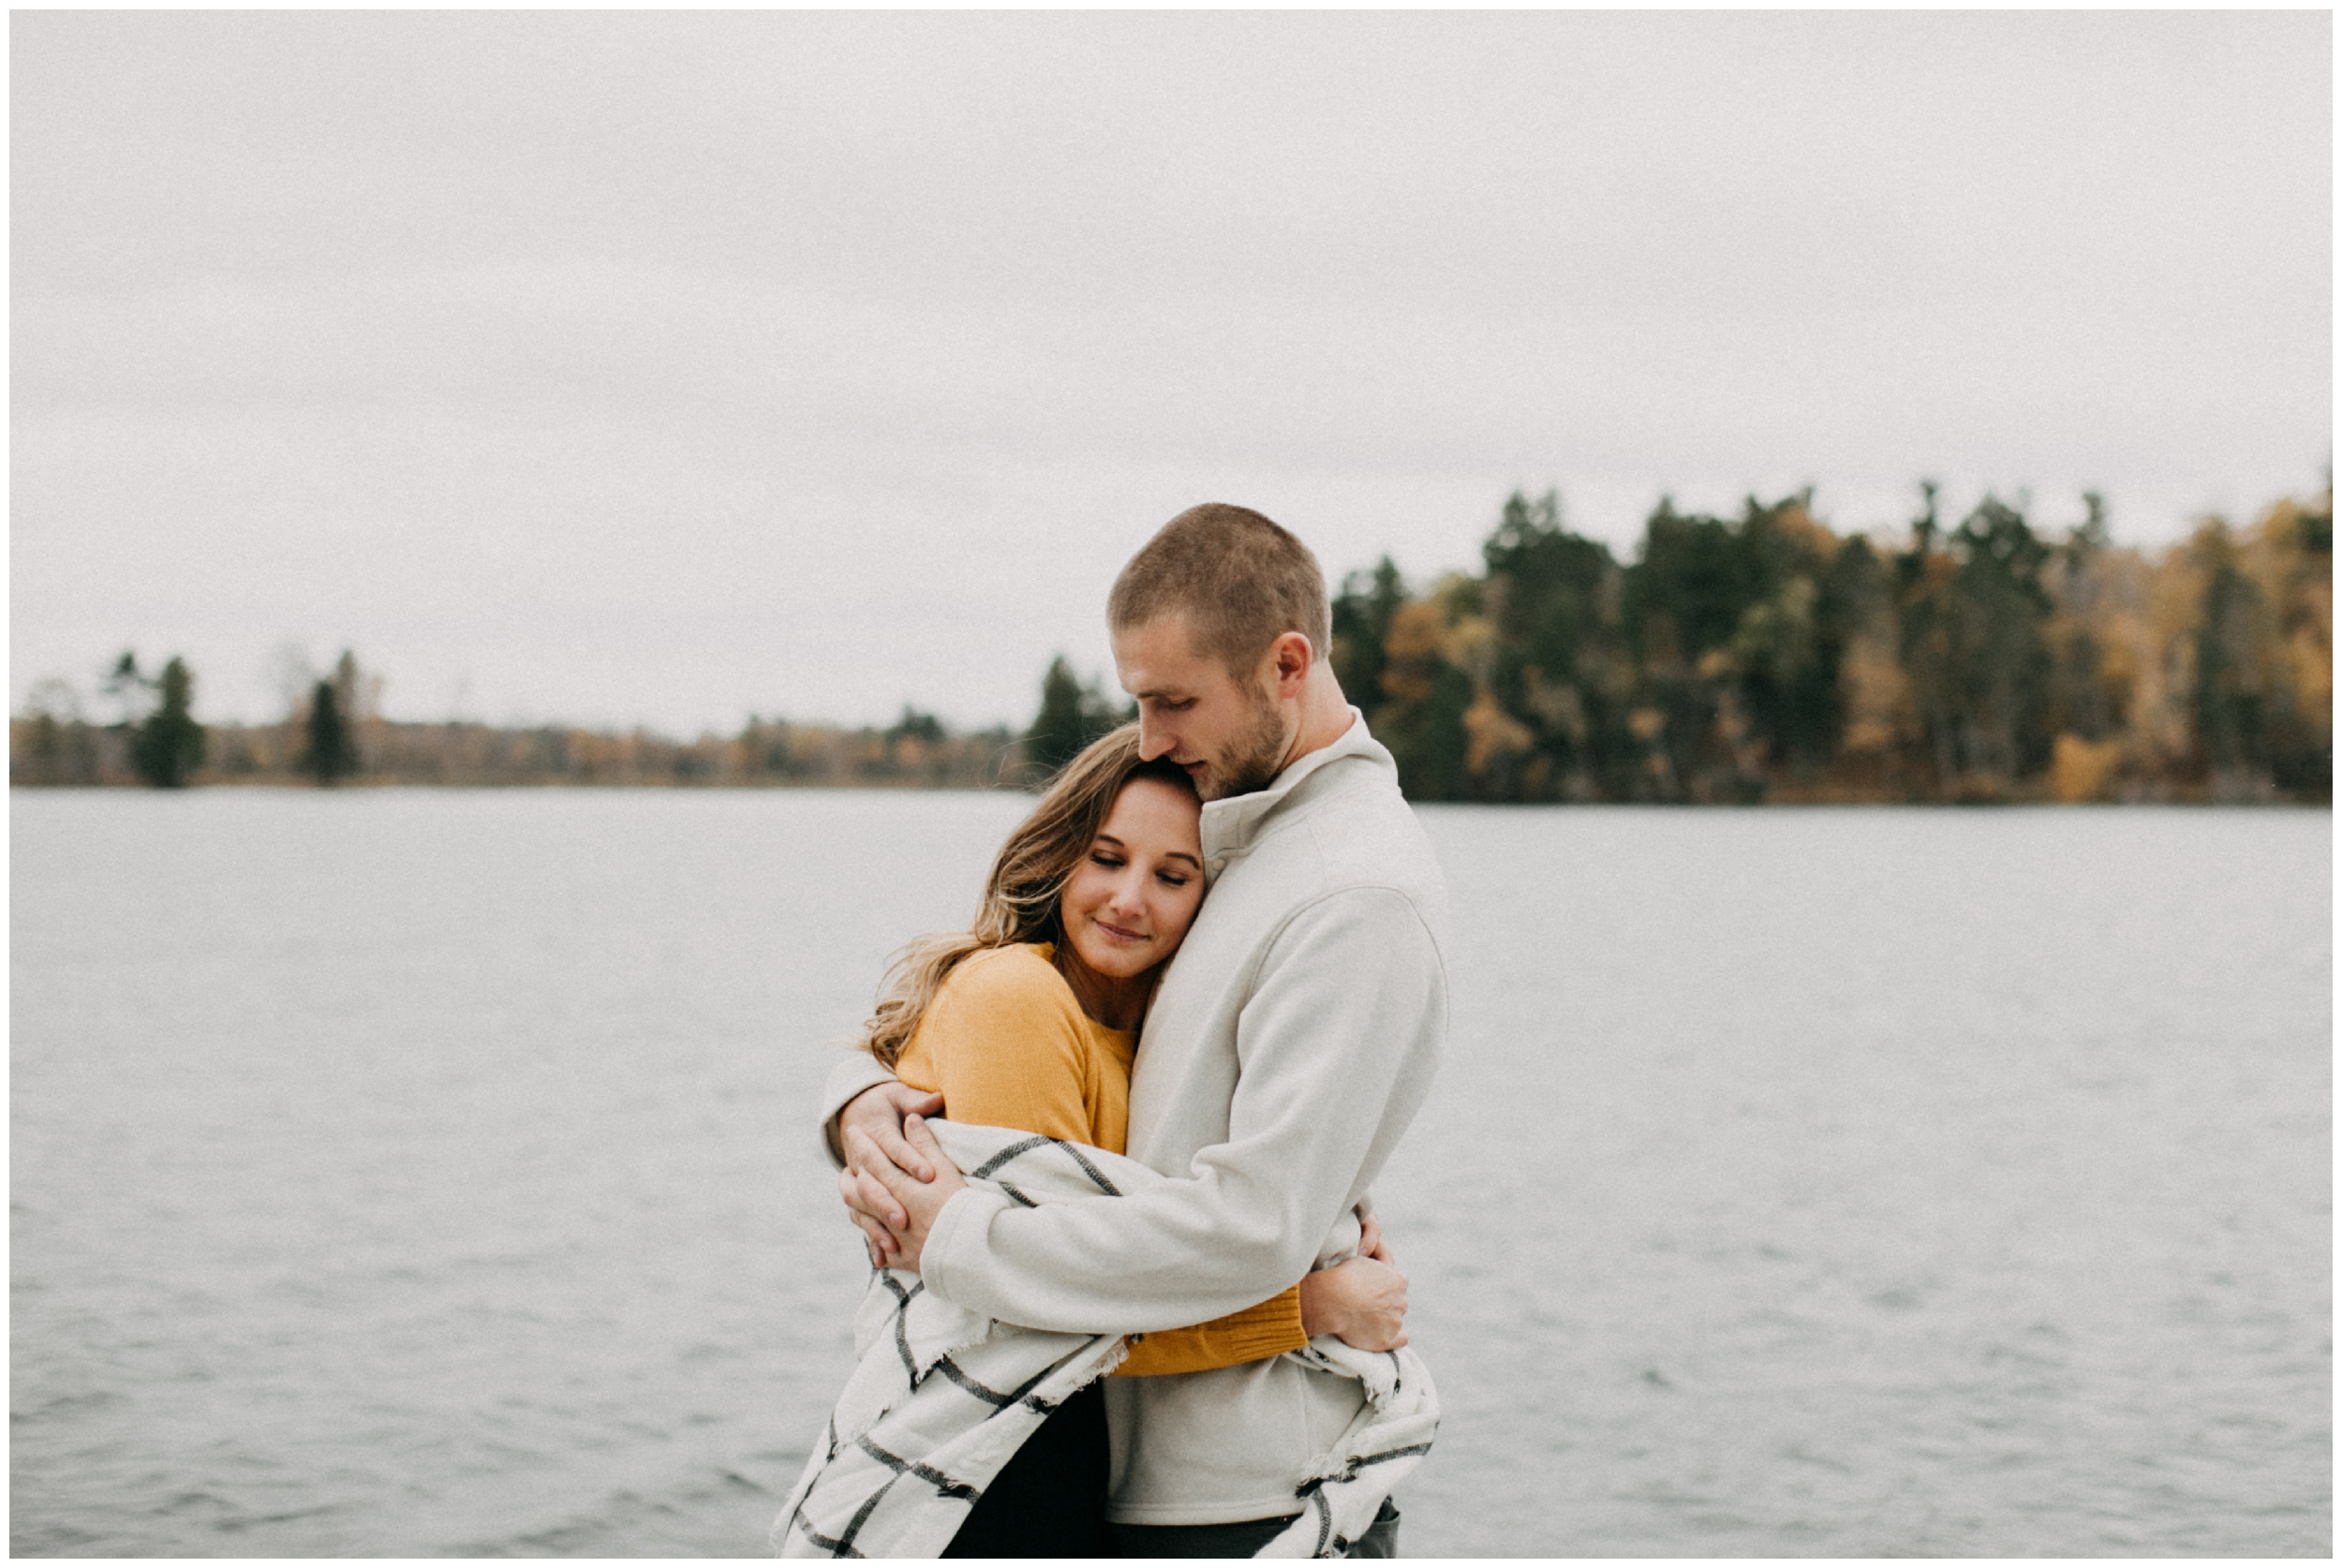 Northern Minnesota cabin engagement session on the lake in Hackensack